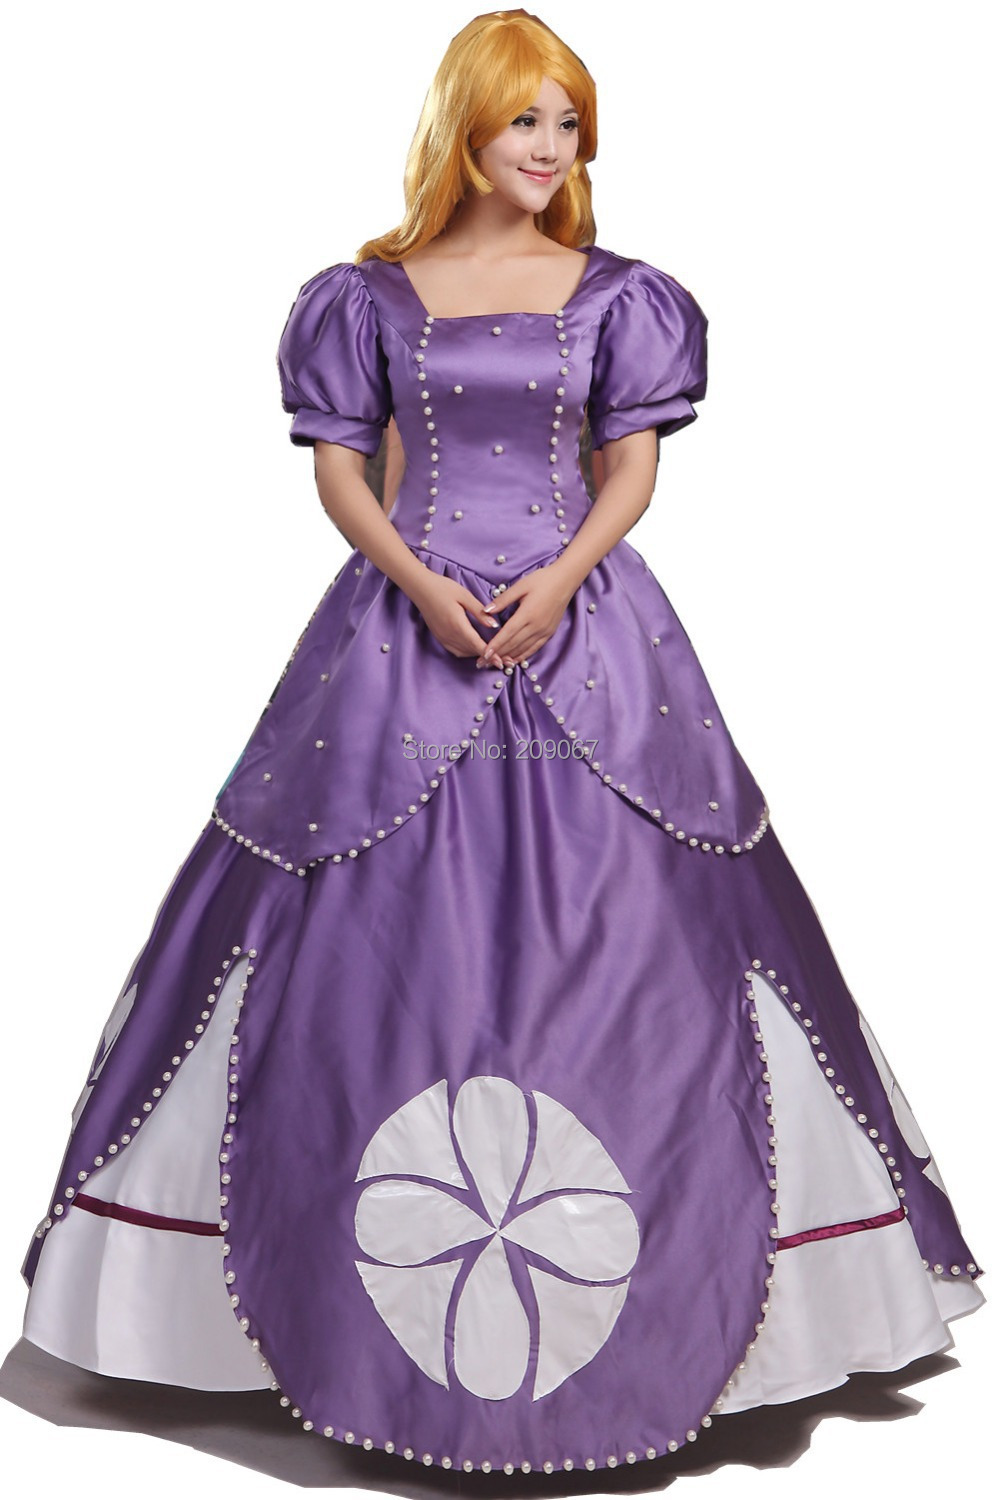 Funky Sofia The First Ball Gown Model - Ball Gown Wedding Dresses ...